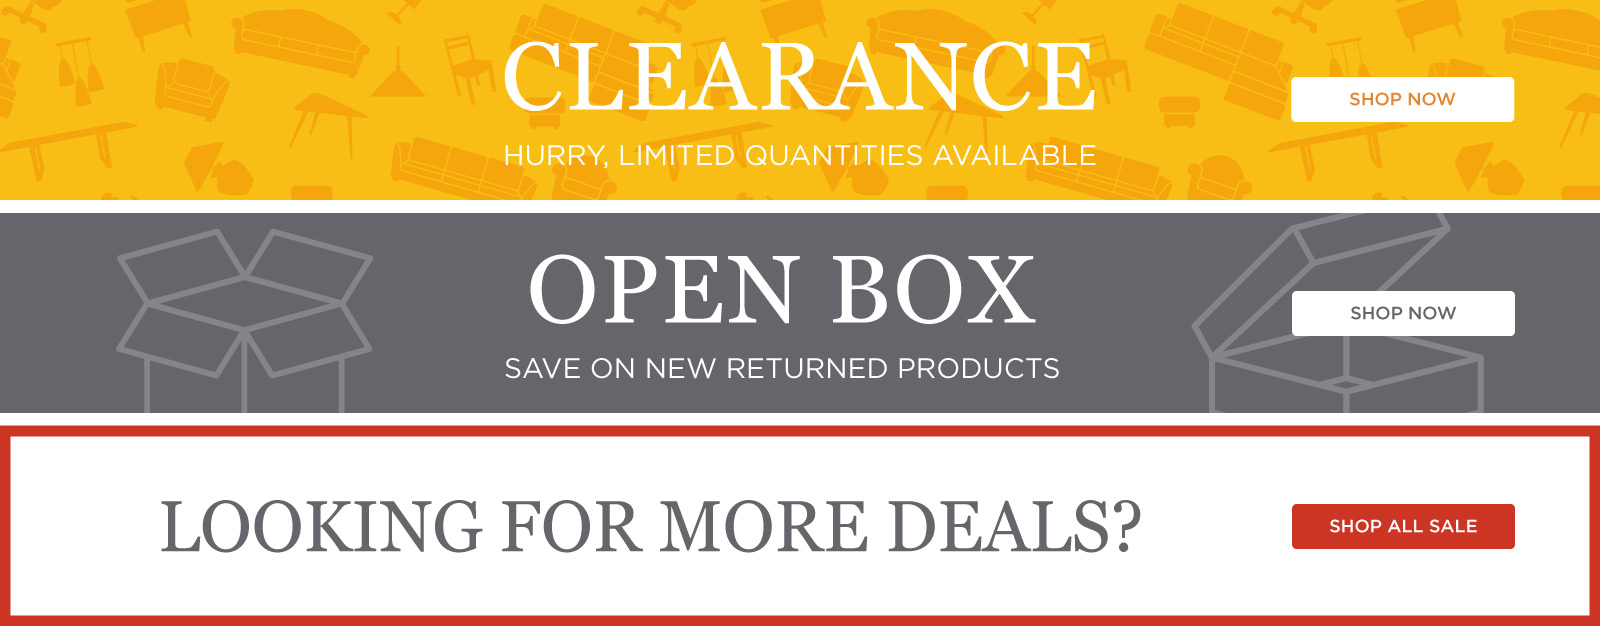 Clearance & Open Box & All Deals